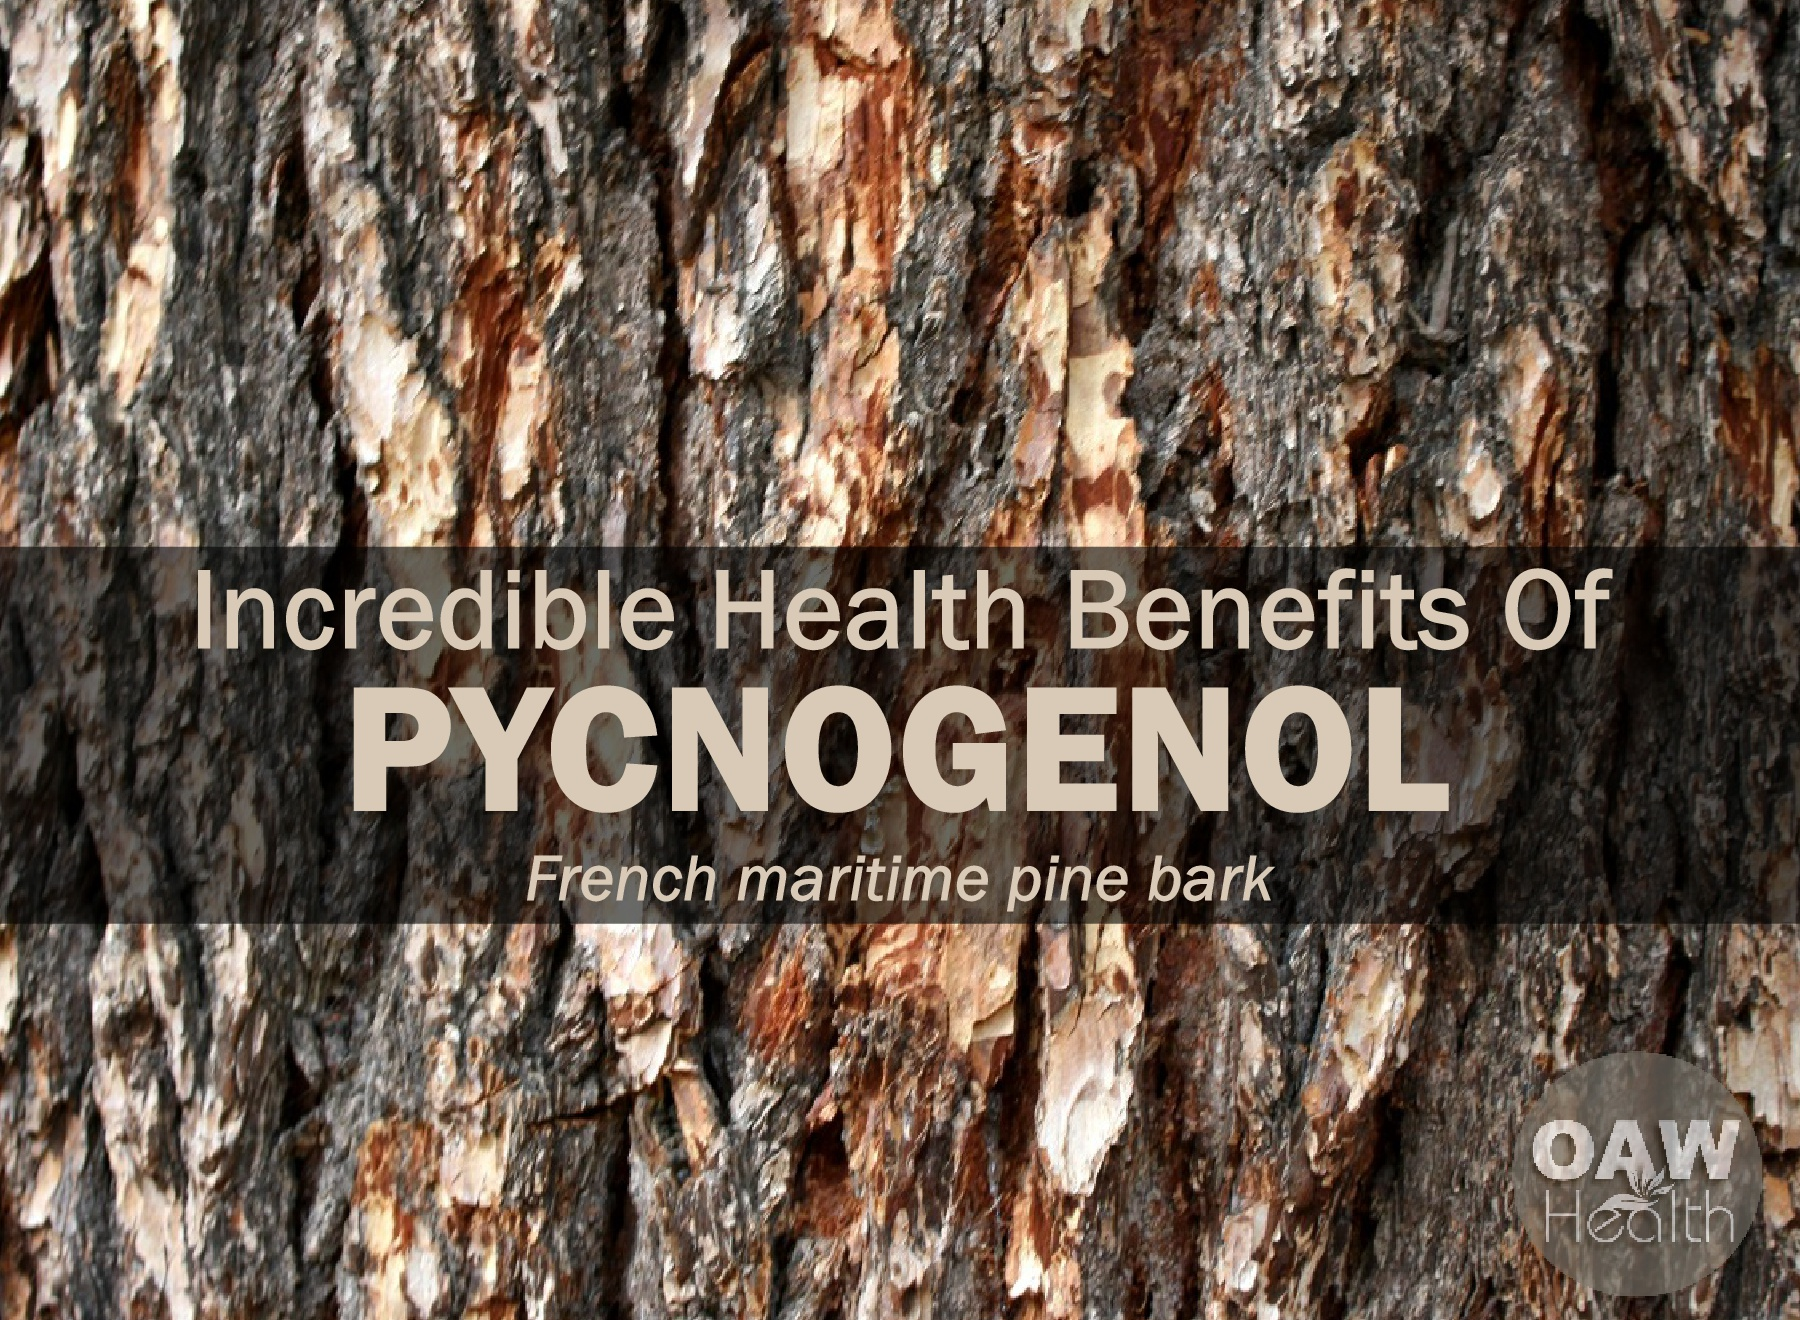 Pycnogenol Incredible Health Benefits Oawhealth